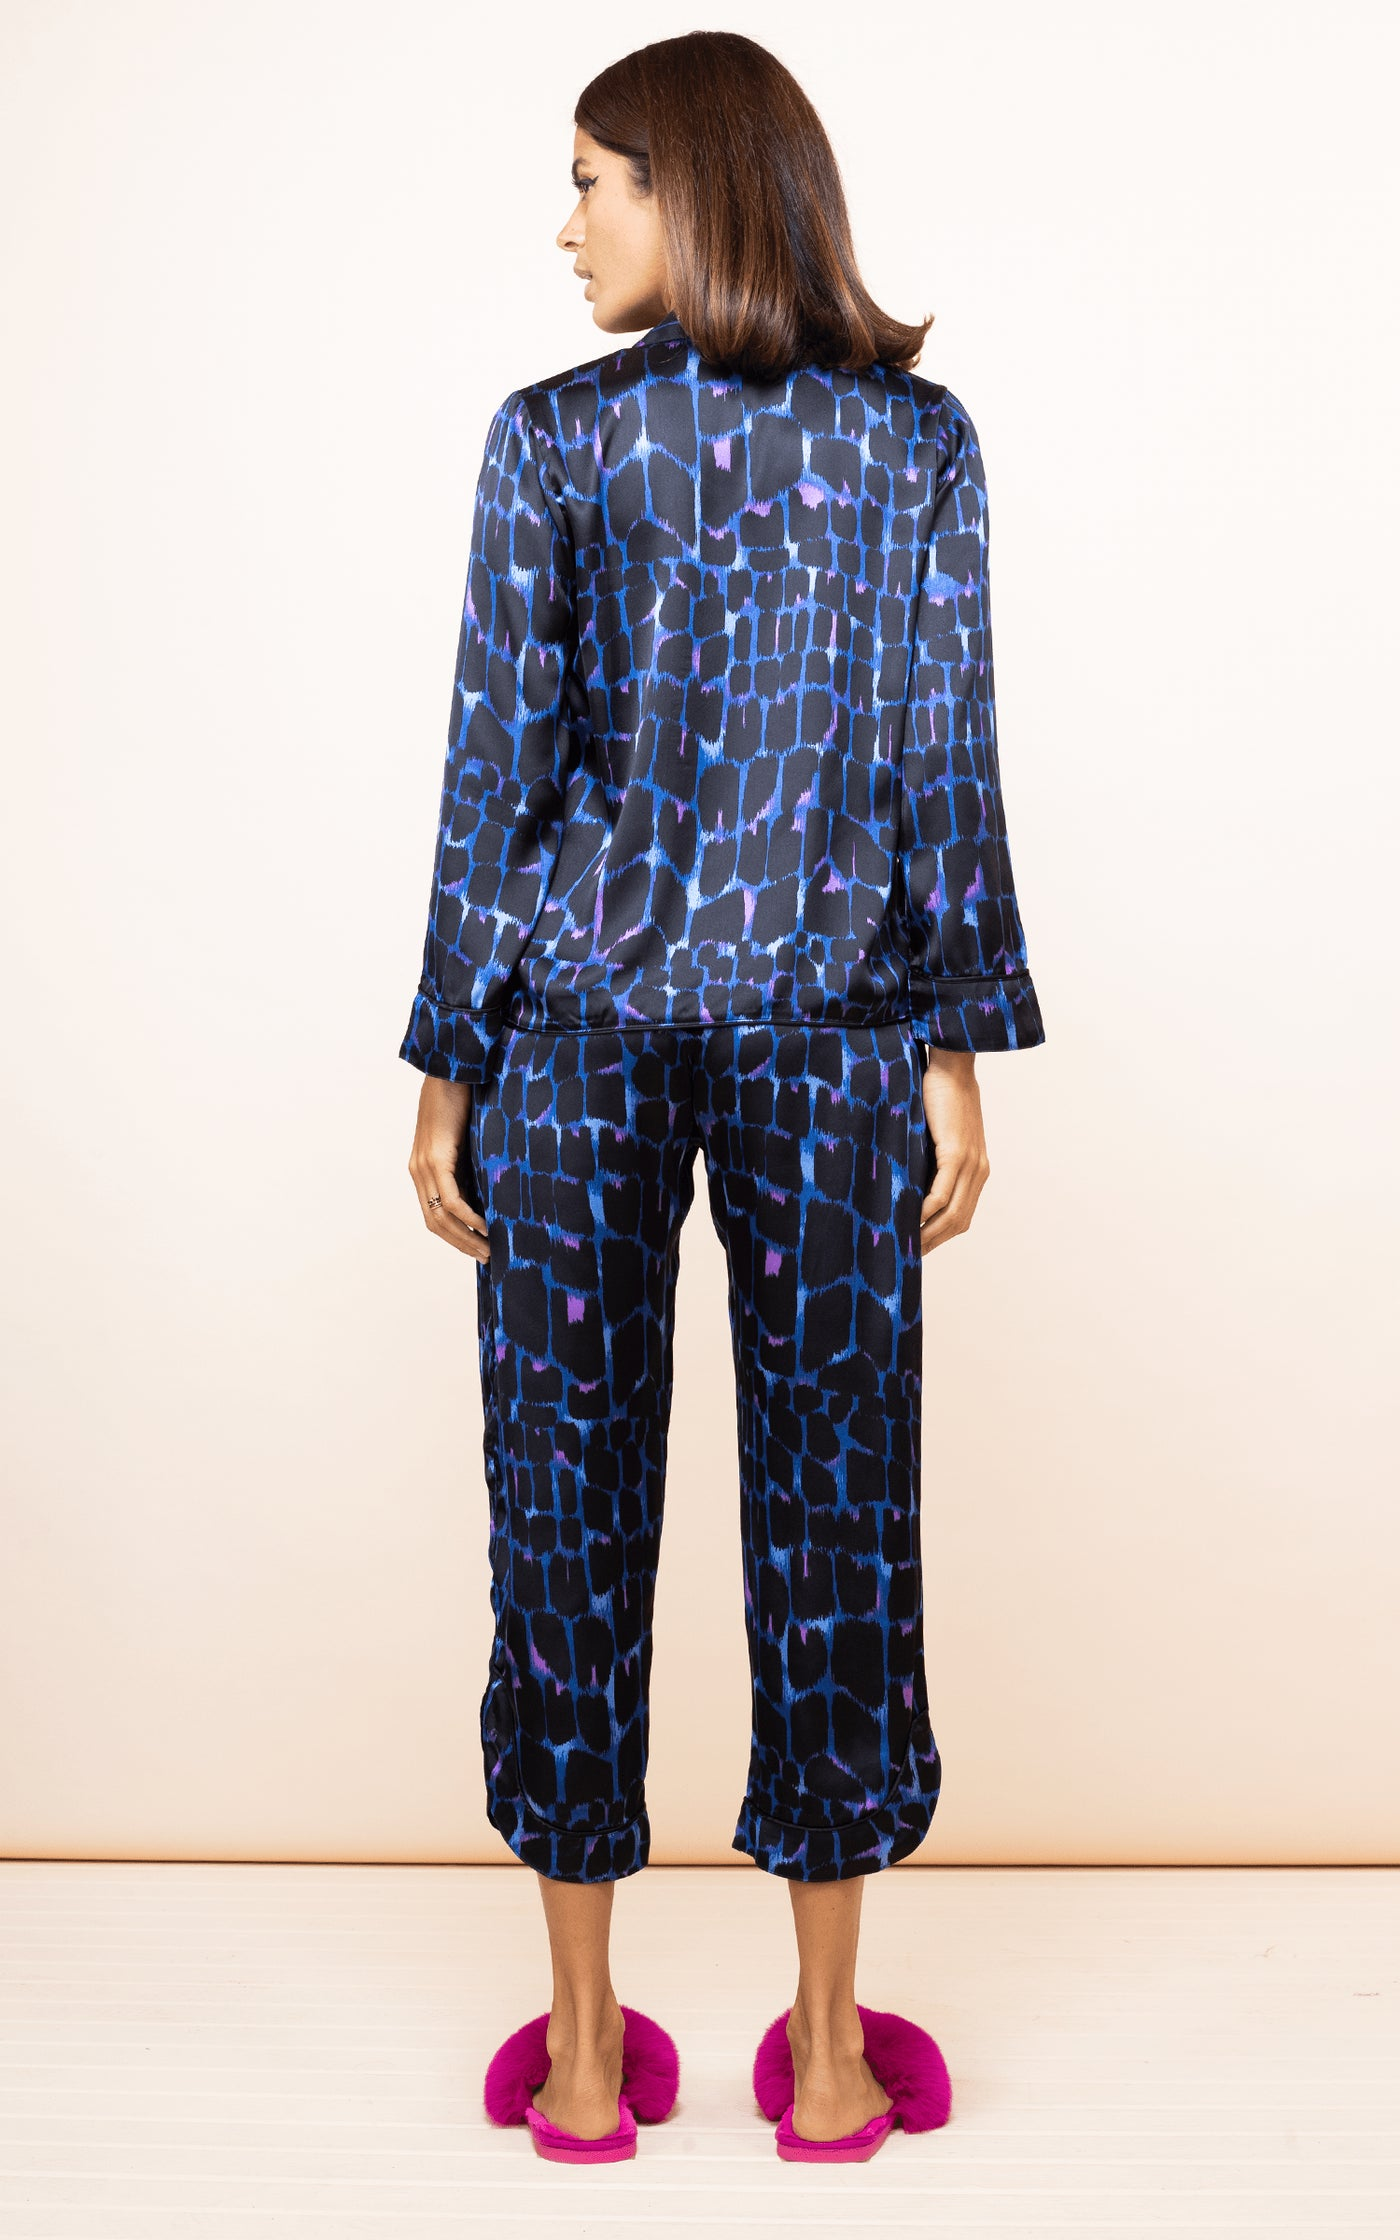 Dancing Leopard model faces backwards wearing Enya PJ Set in blue alligator print with slippers